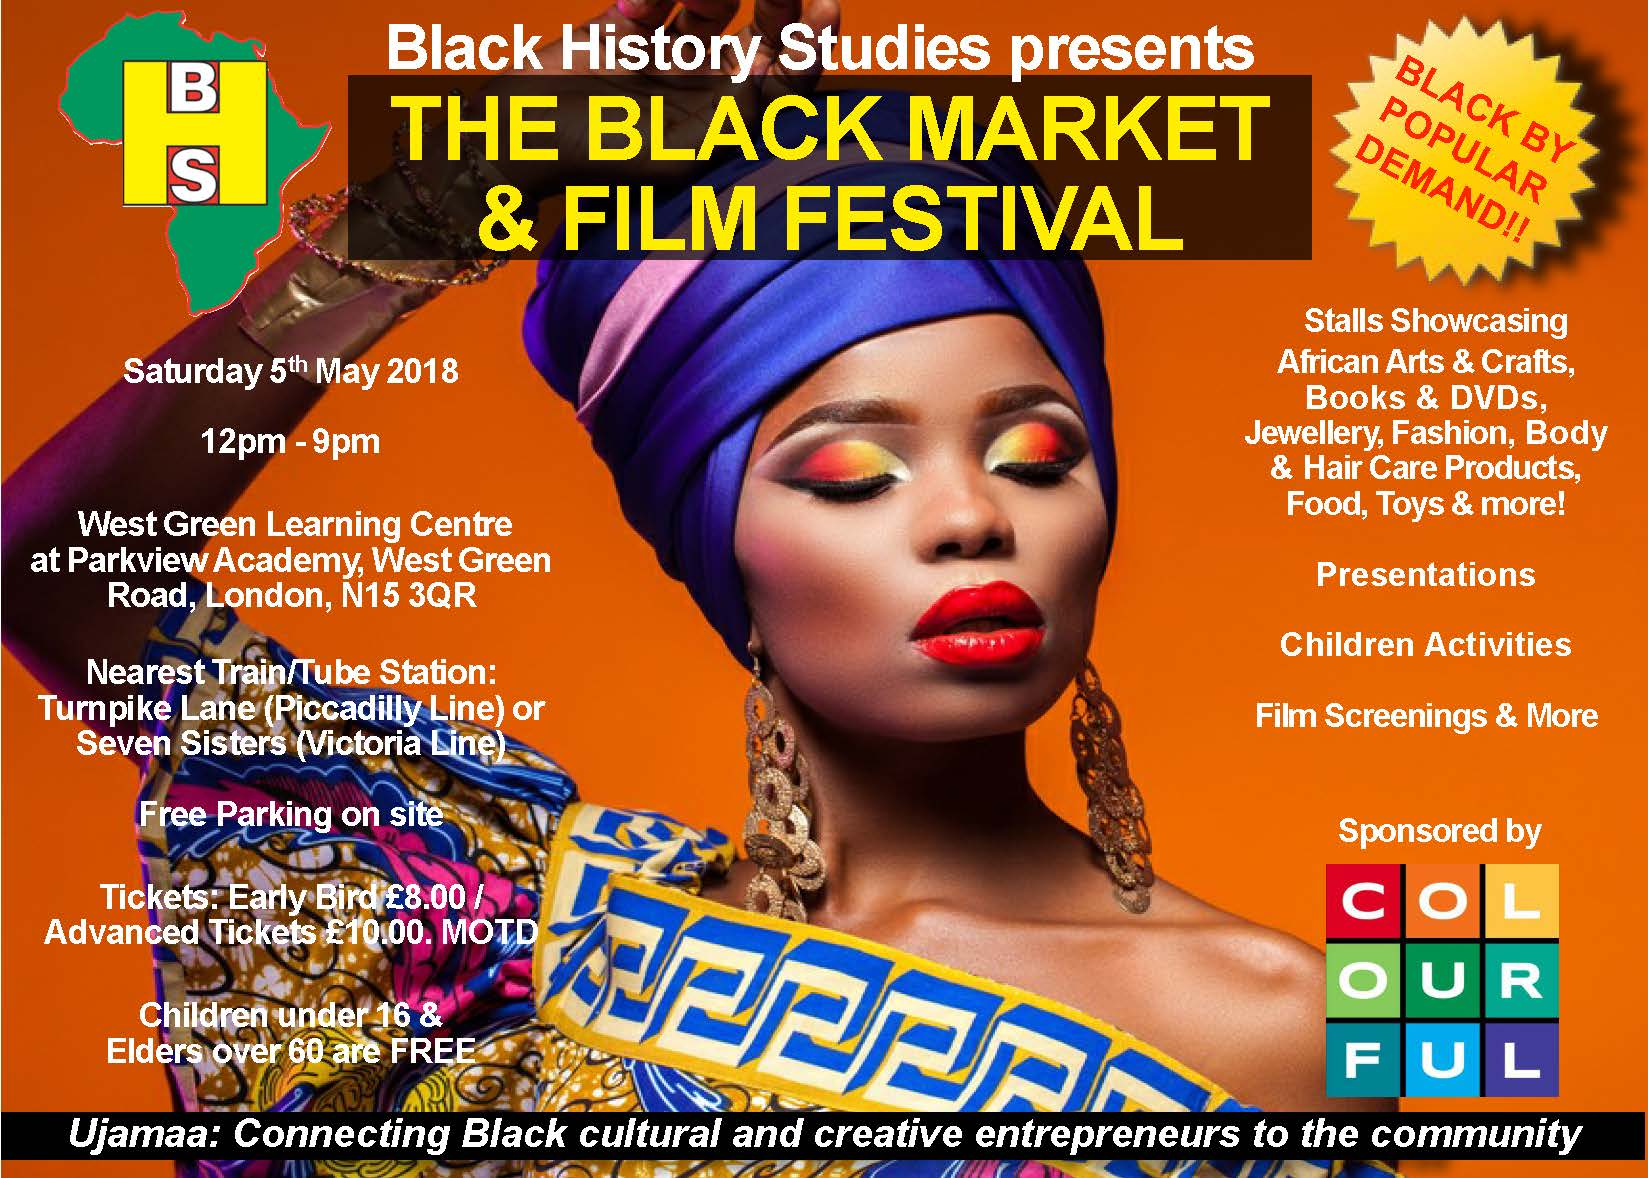 The Black Market & Film Festival – May